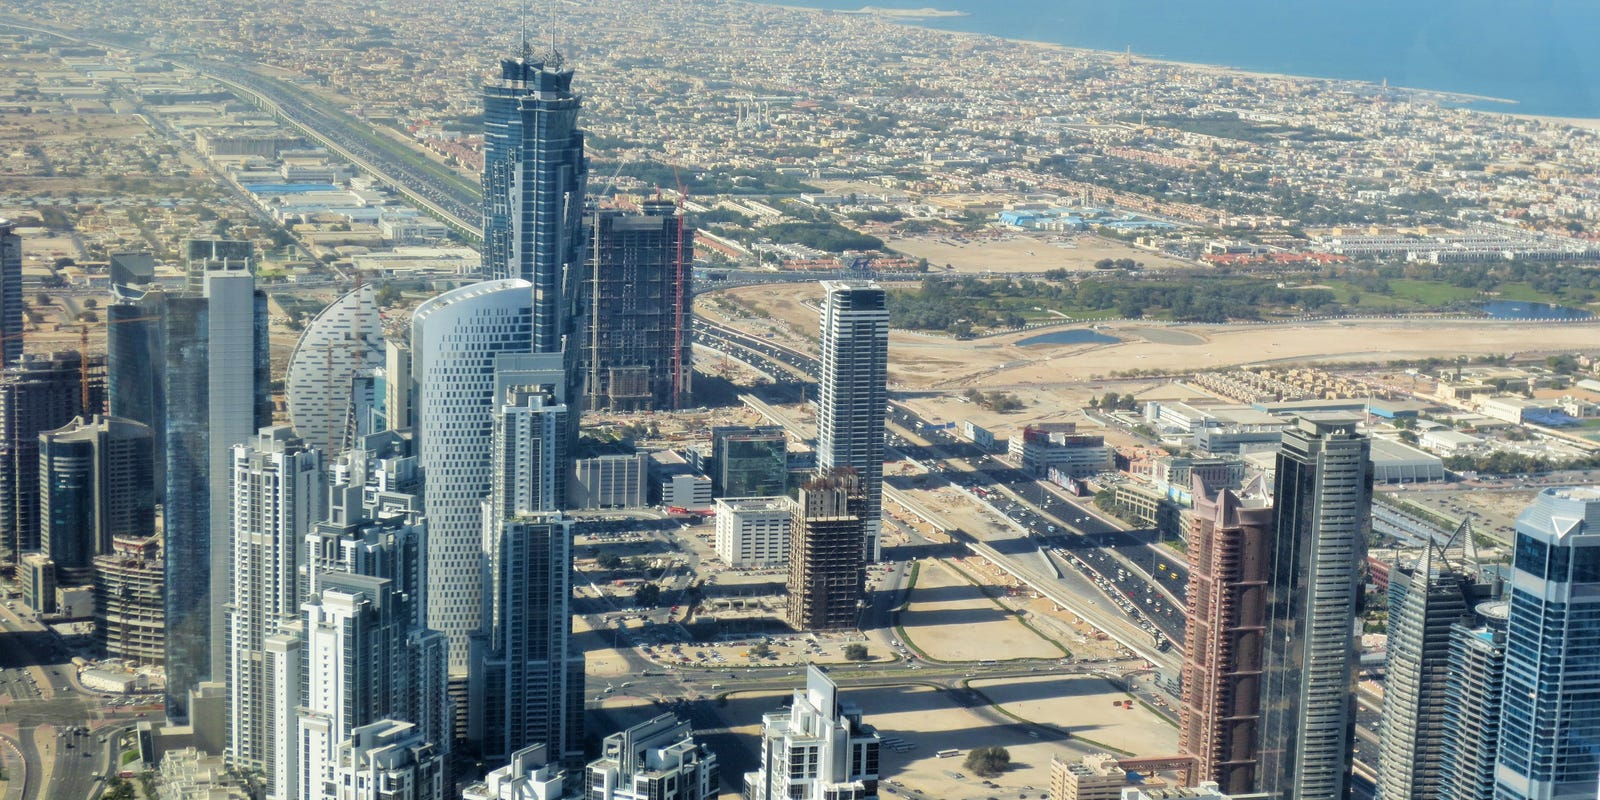 Burj Khalifa: On the 124th floor of the